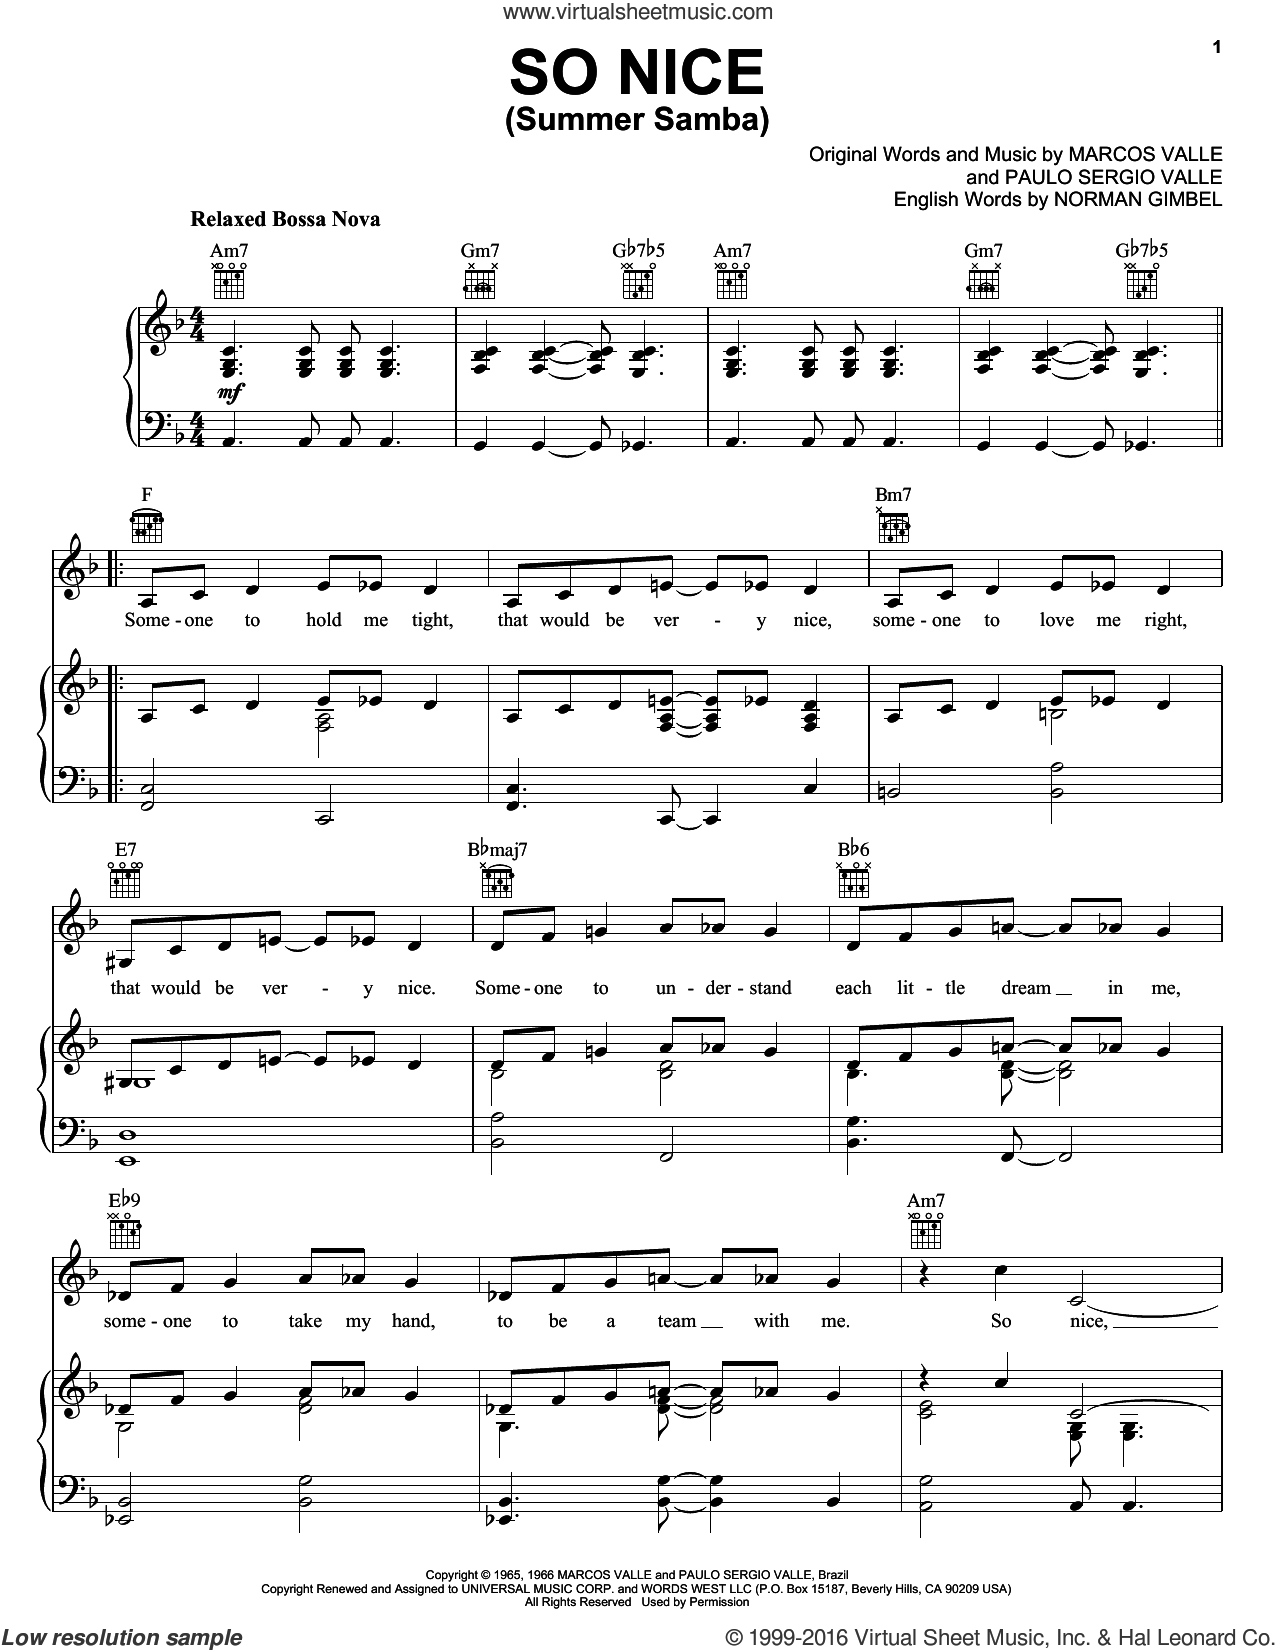 So Nice (Summer Samba) sheet music for voice, piano or guitar by Paulo Sergio Valle